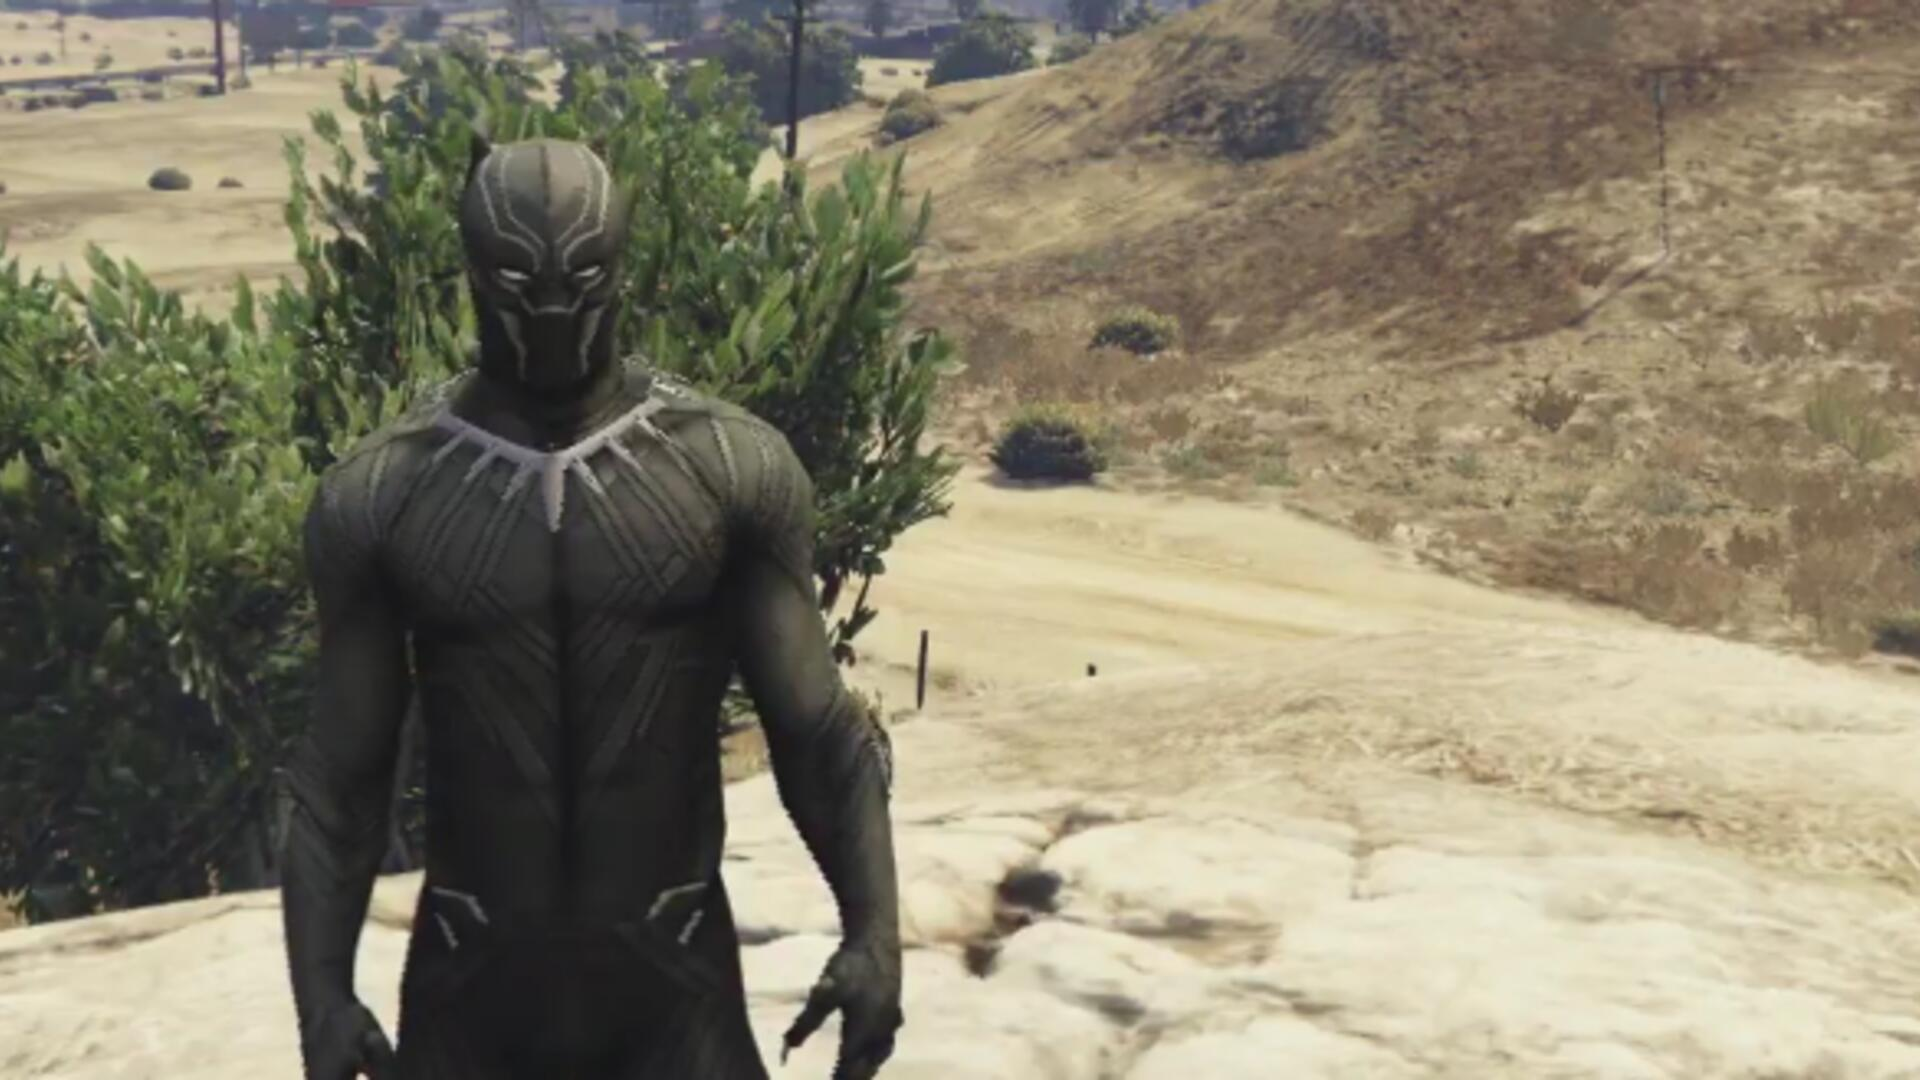 Wakanda Forever! Here's a Great Black Panther Mod for Grand